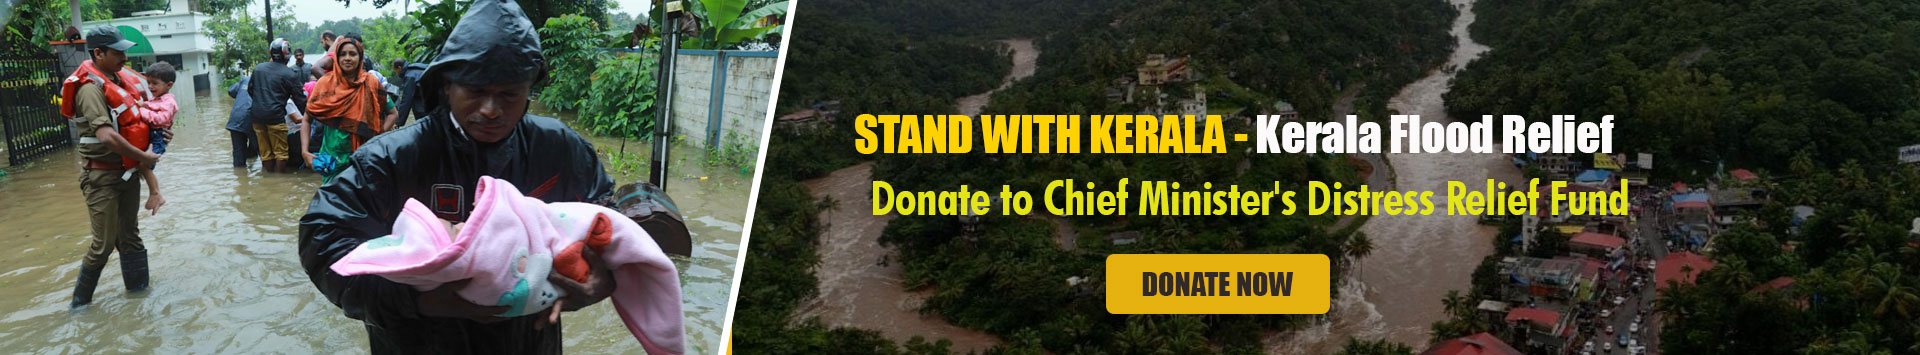 Donate to Chief Minister's Distress Relief Fund